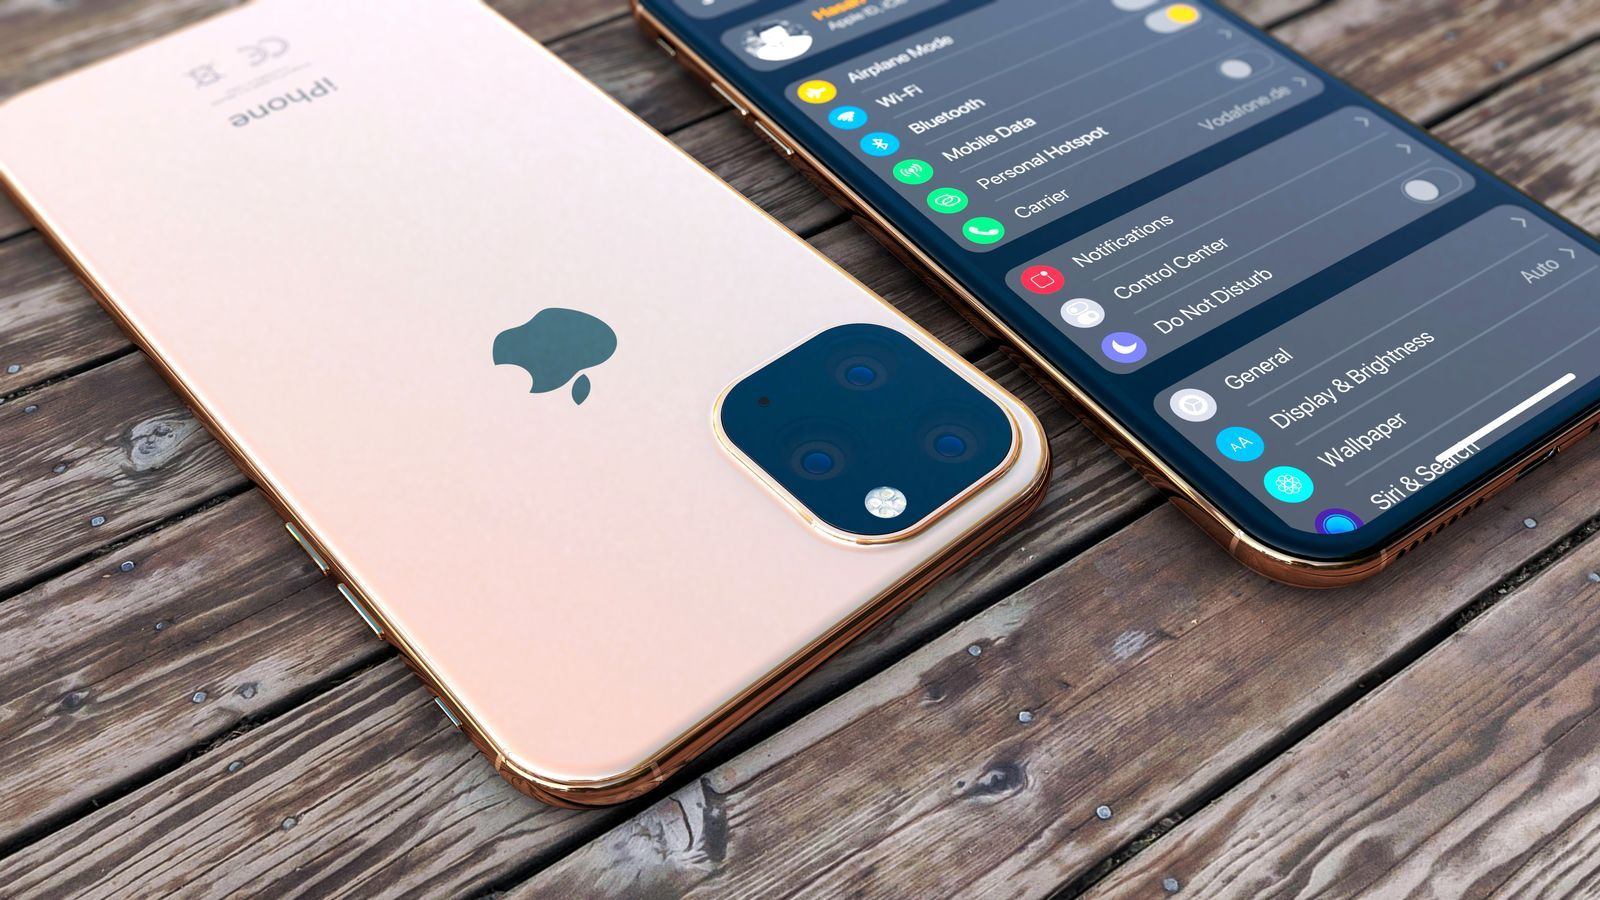 84cd3579334 Bloomberg: Three new iPhone 11 models coming with reverse charging, big  camera upgrades